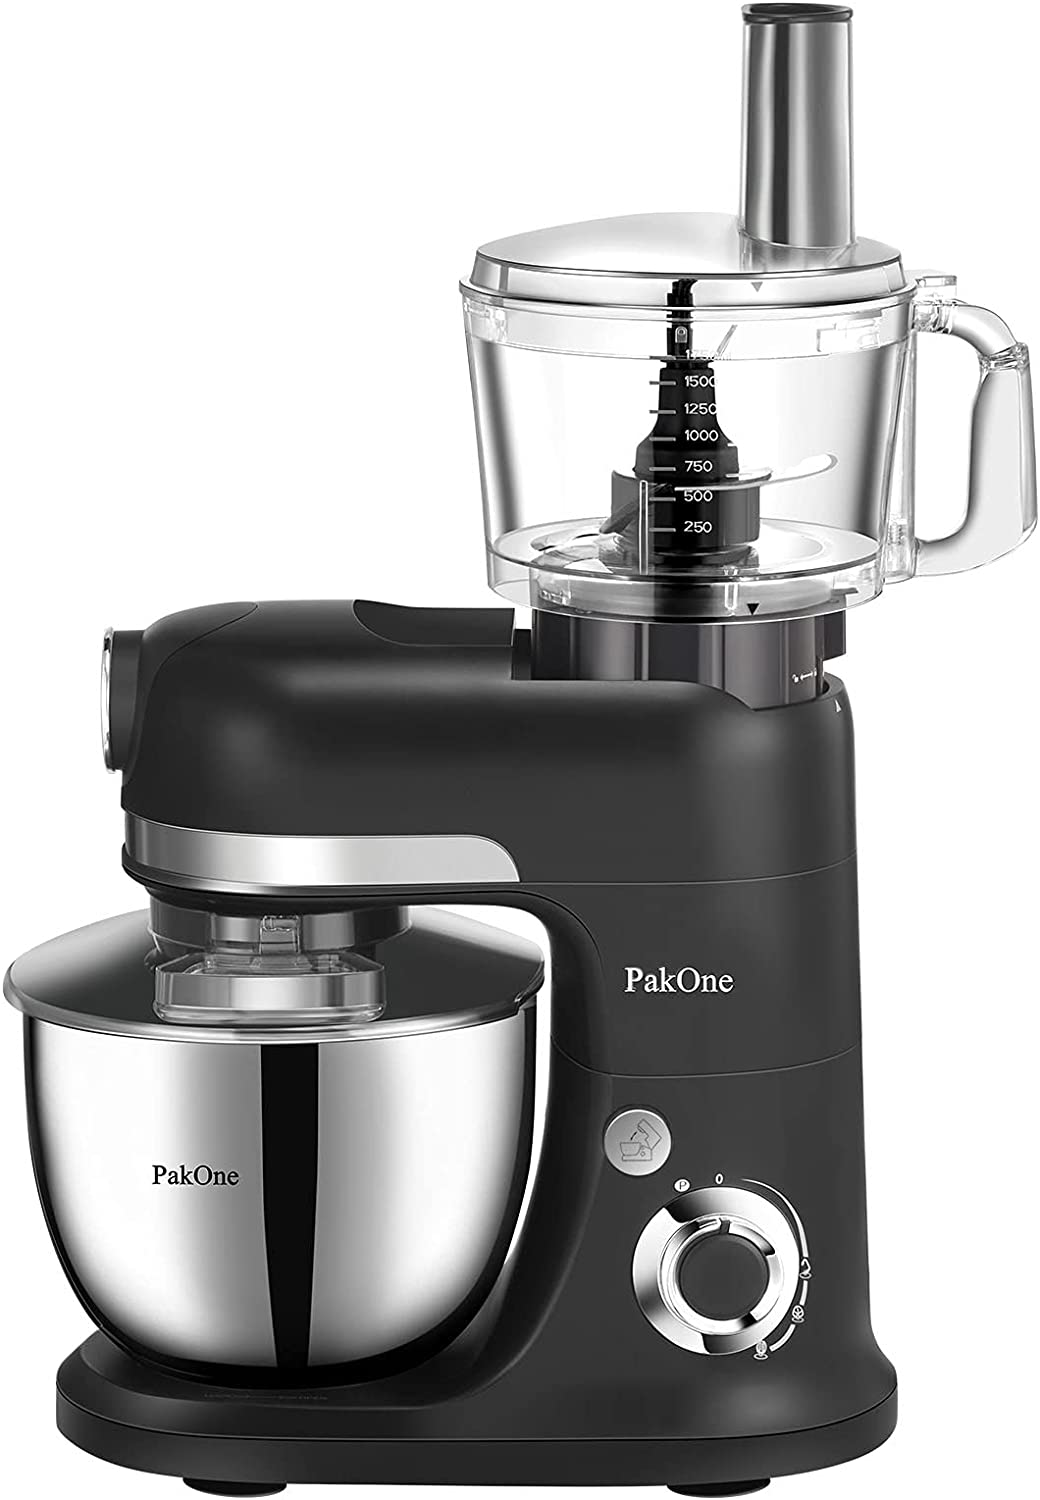 PakOne Stand Mixer, 6.5QT 800W Tilt-HeadMulti Speed+P Food Mixer, Electric Kitchen Mixer with Food Processor, Stainless Steel Bowl, Dough Hook, Wire Whip & Beater, Upgraded Transparent Cover